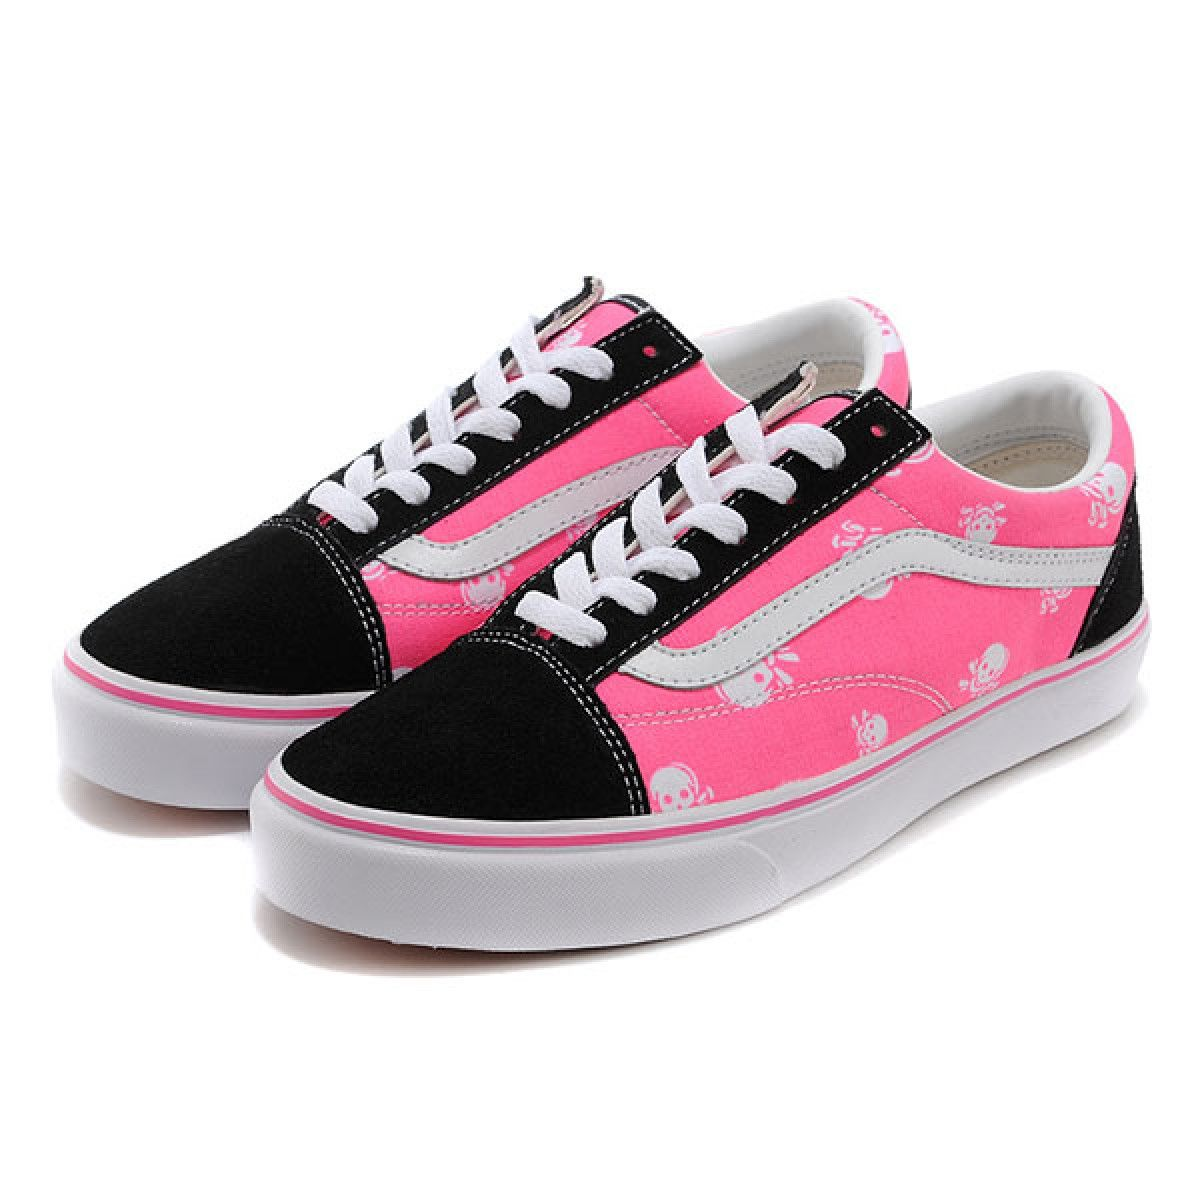 0d9e5ed004 Vans Shoes Black Pink Skulls Old Skool Shoes Womens Classic Canvas ...